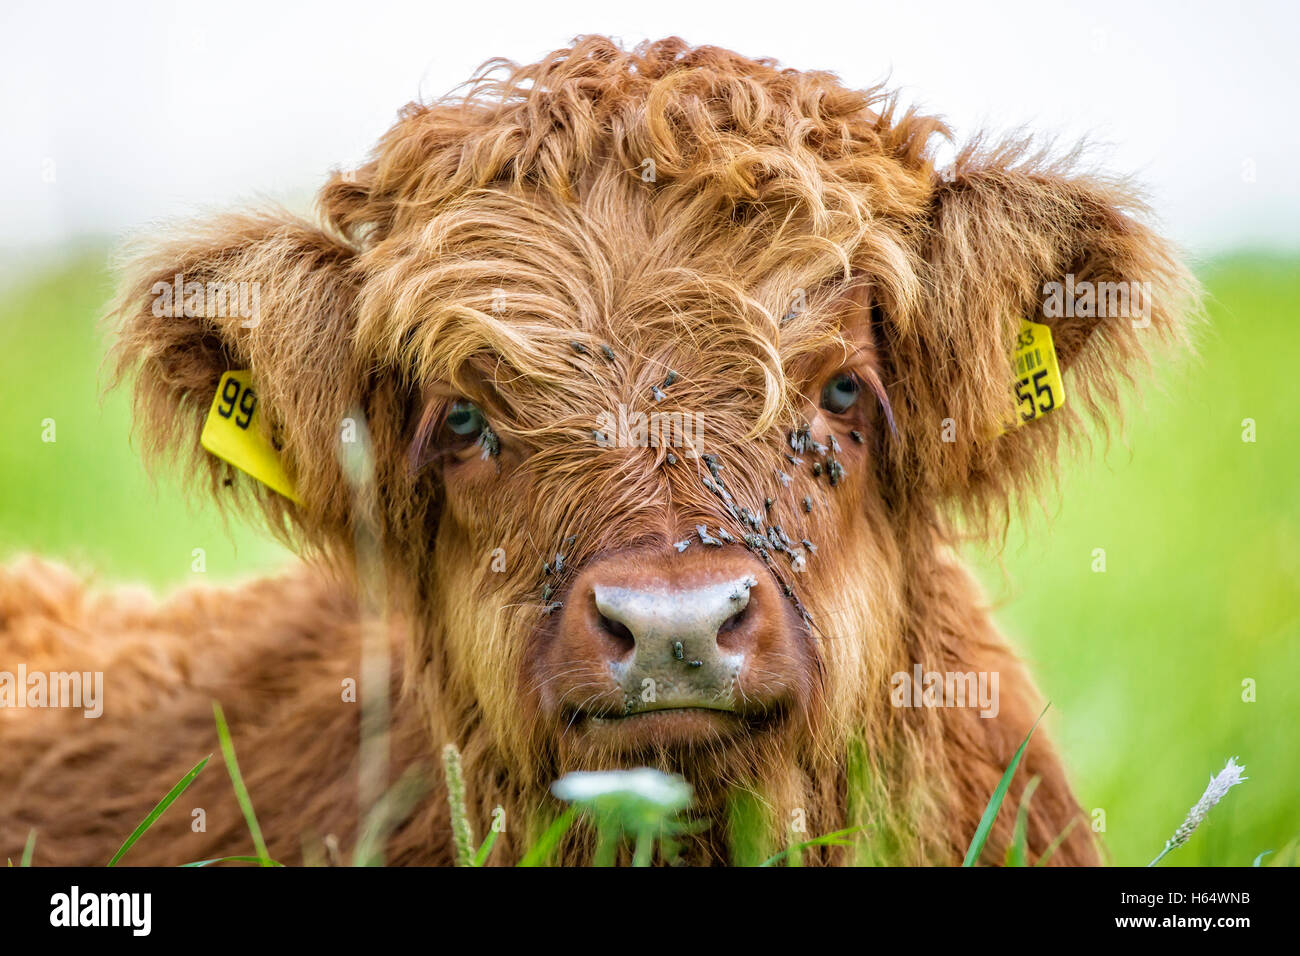 Close up of highland cow calf lying in grass - Stock Image